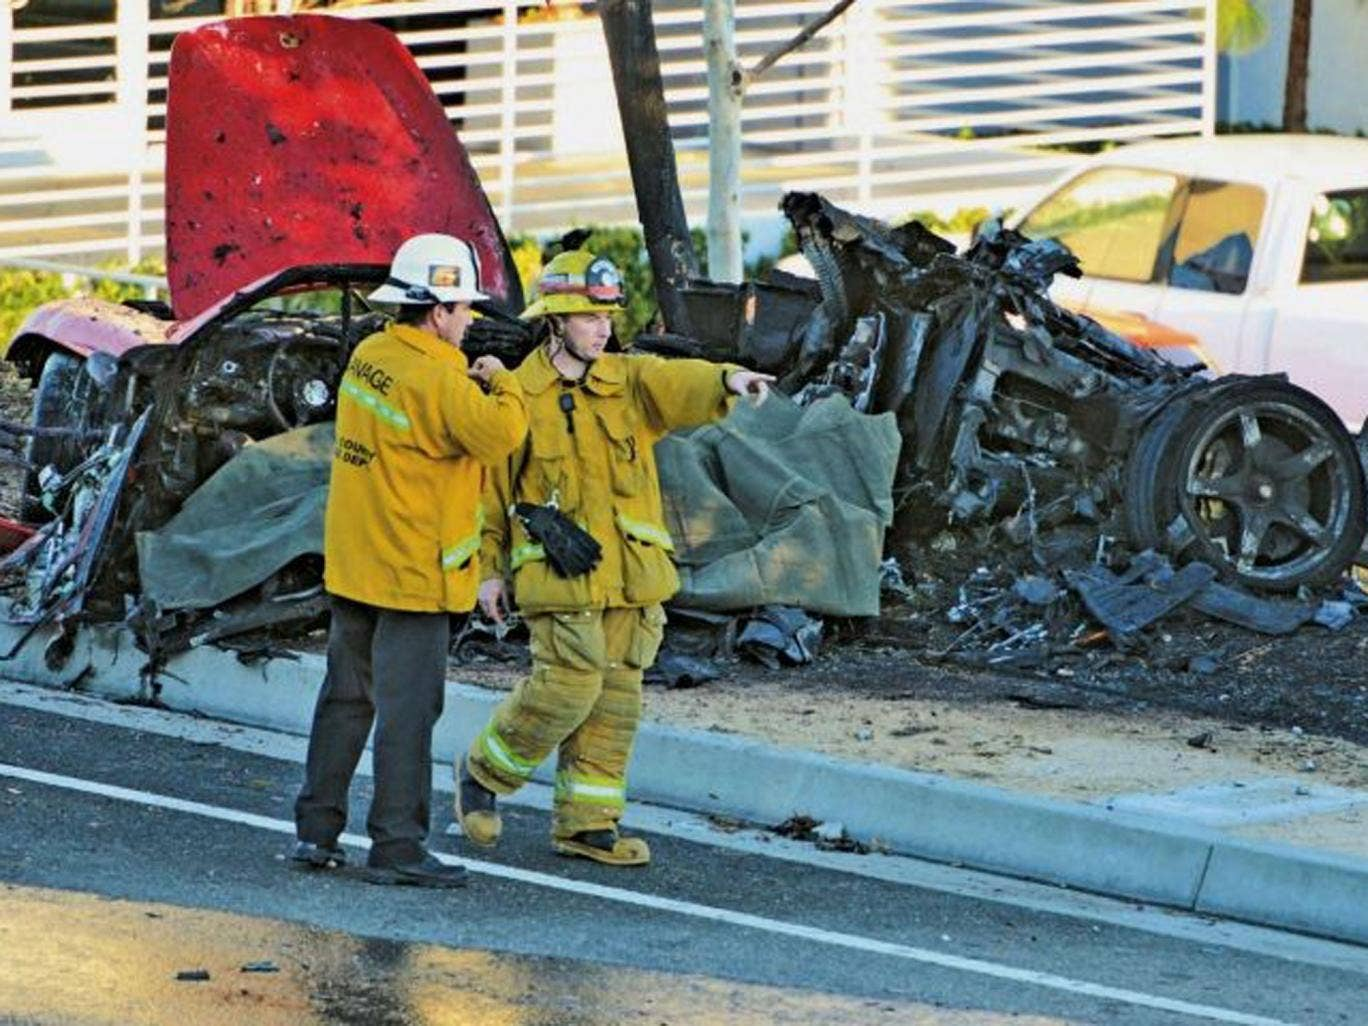 Sheriff's deputies work near the wreckage of a Porsche that crashed into a light pole on Hercules Street near Kelly Johnson Parkway in Valencia, California, north of Los Angeles